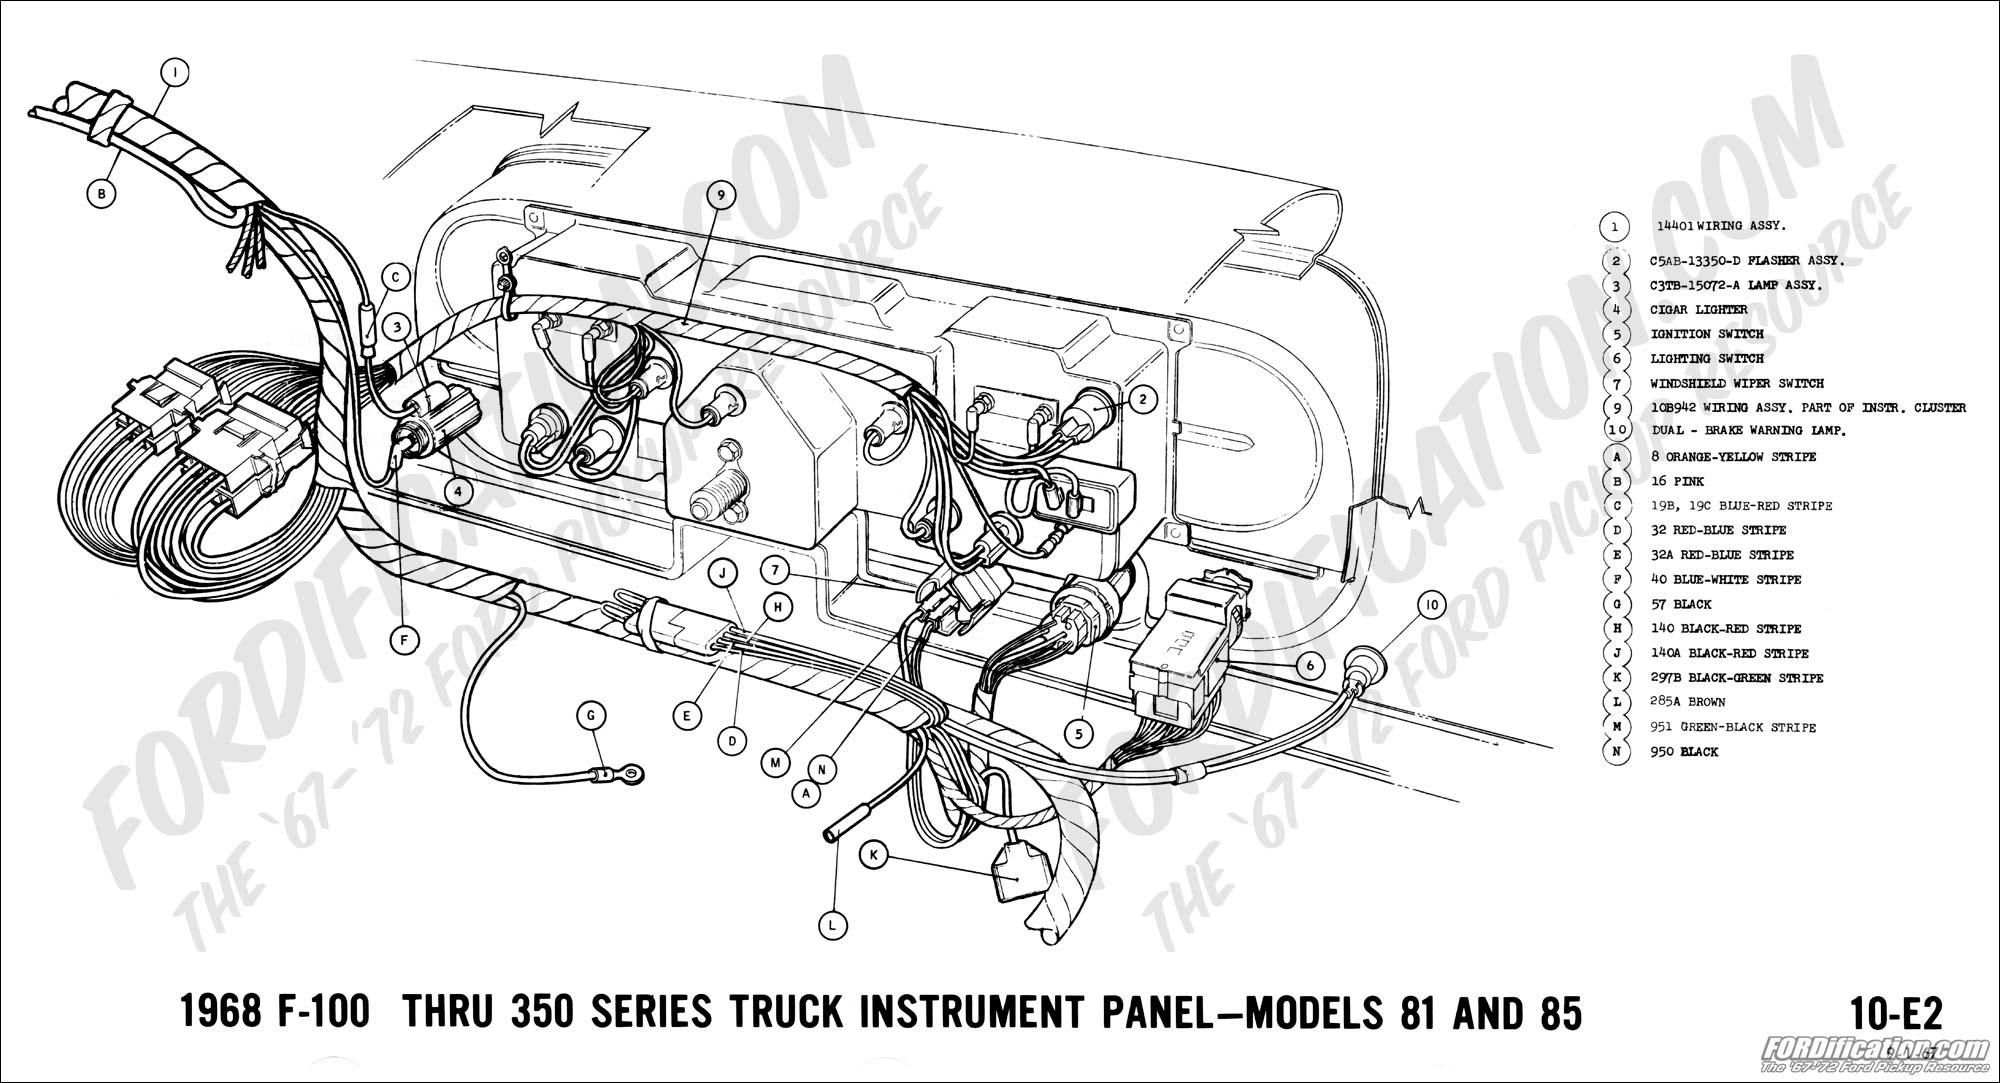 69 Vw Turn Signal Wiring Diagram Free Download Library Parallel Lighting Circuits All Generation Schematics Chevy Nova Forum 1968 F 100 Thru 350 Instrument Panel